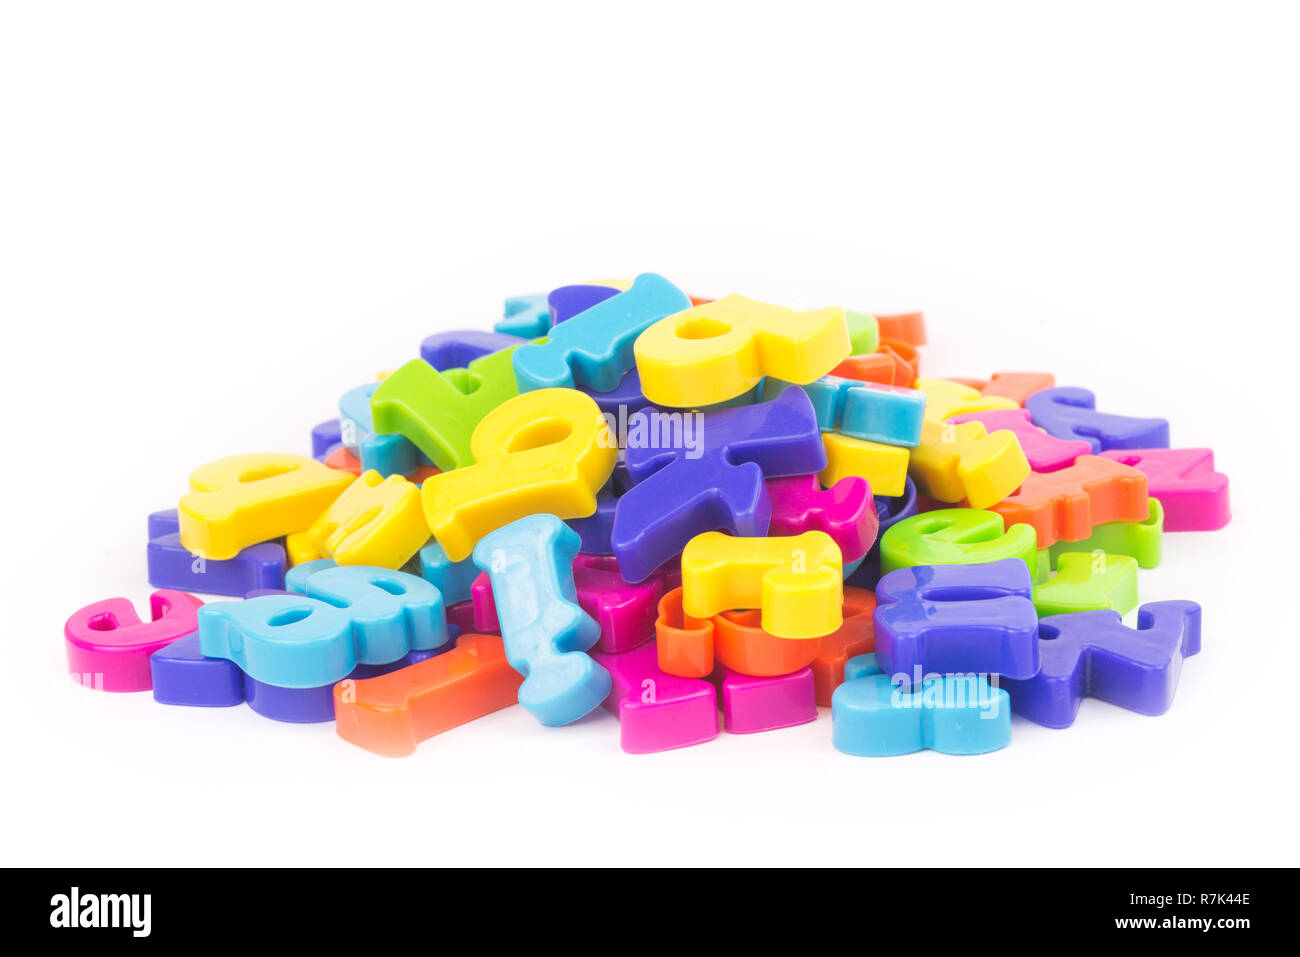 Heap of colourful plastic letters.Concept of education, online and home education. - Stock Image